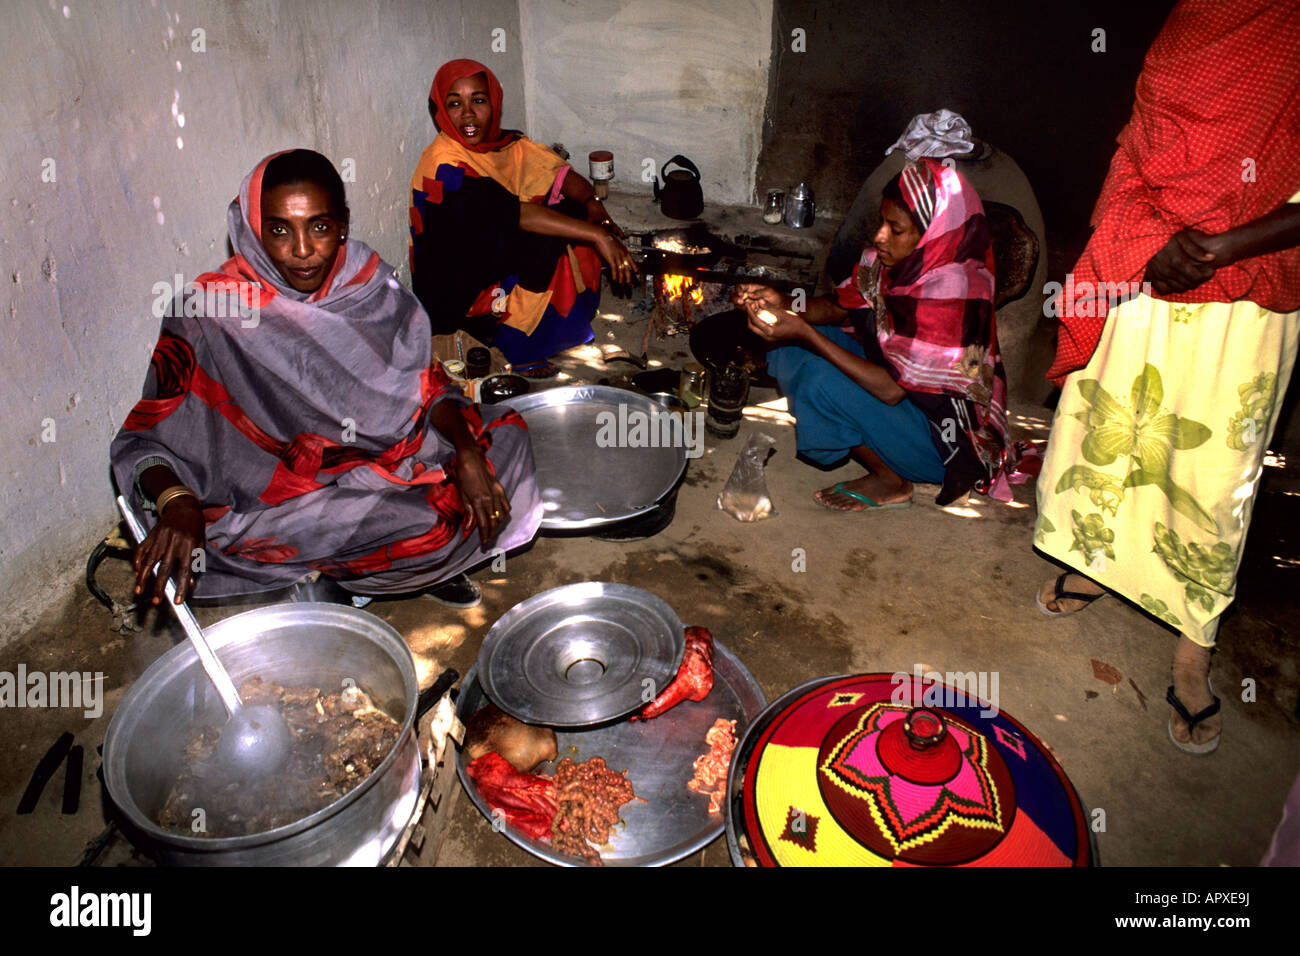 Three women share the cooking in a Nubian kitchen while a fourth woman watches from the side - Stock Image